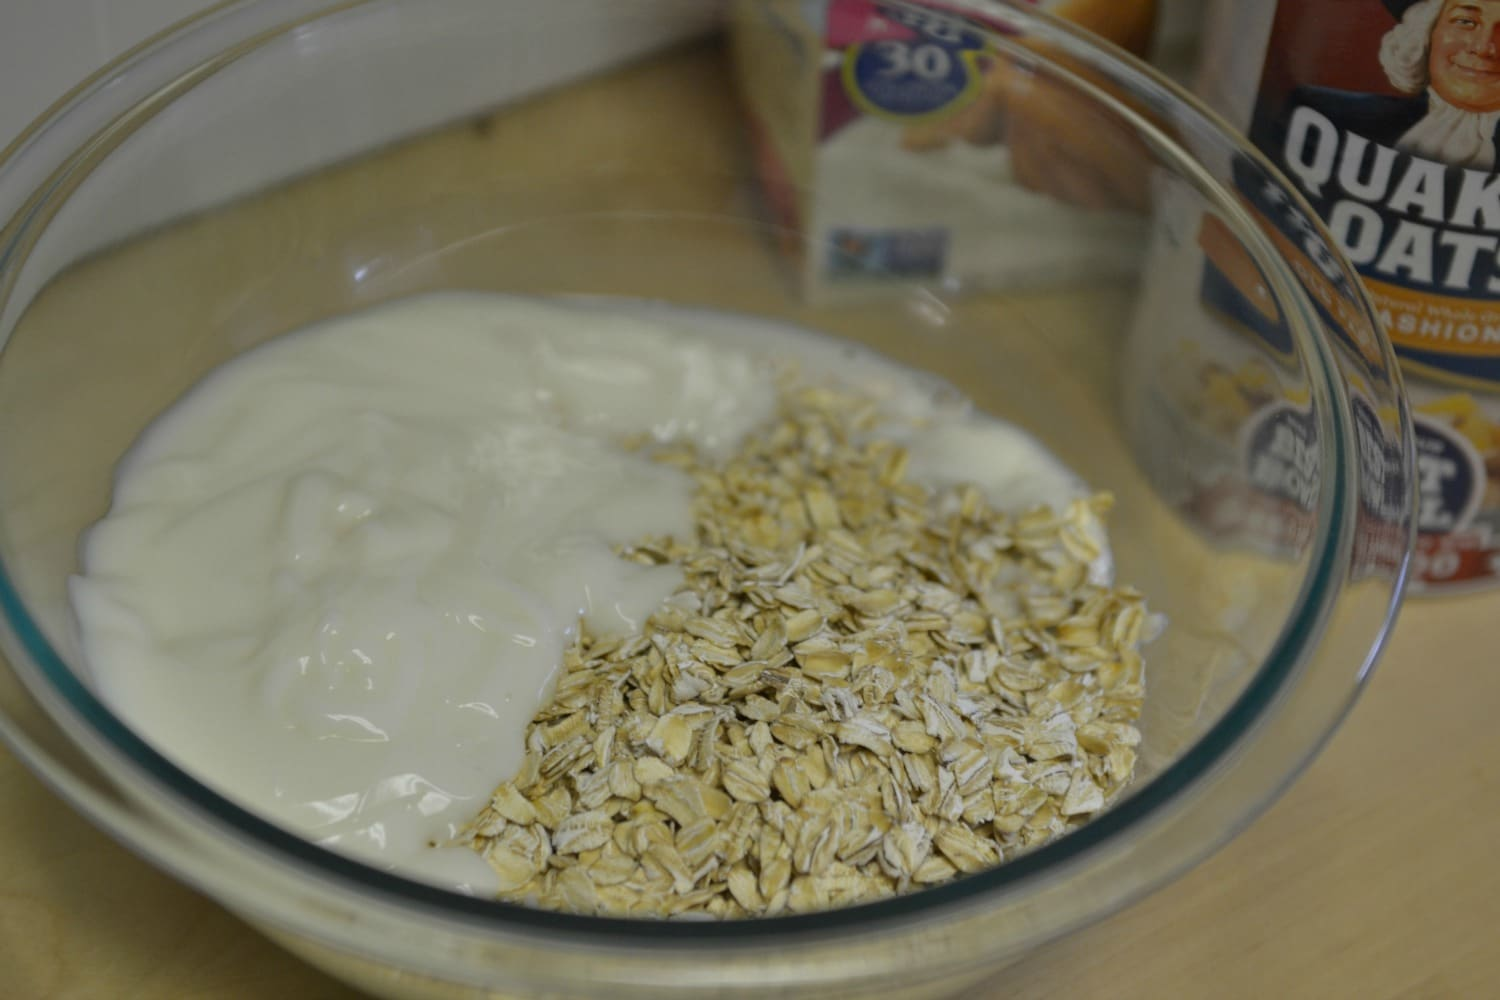 Mix the oats and oatmeal in a bowl